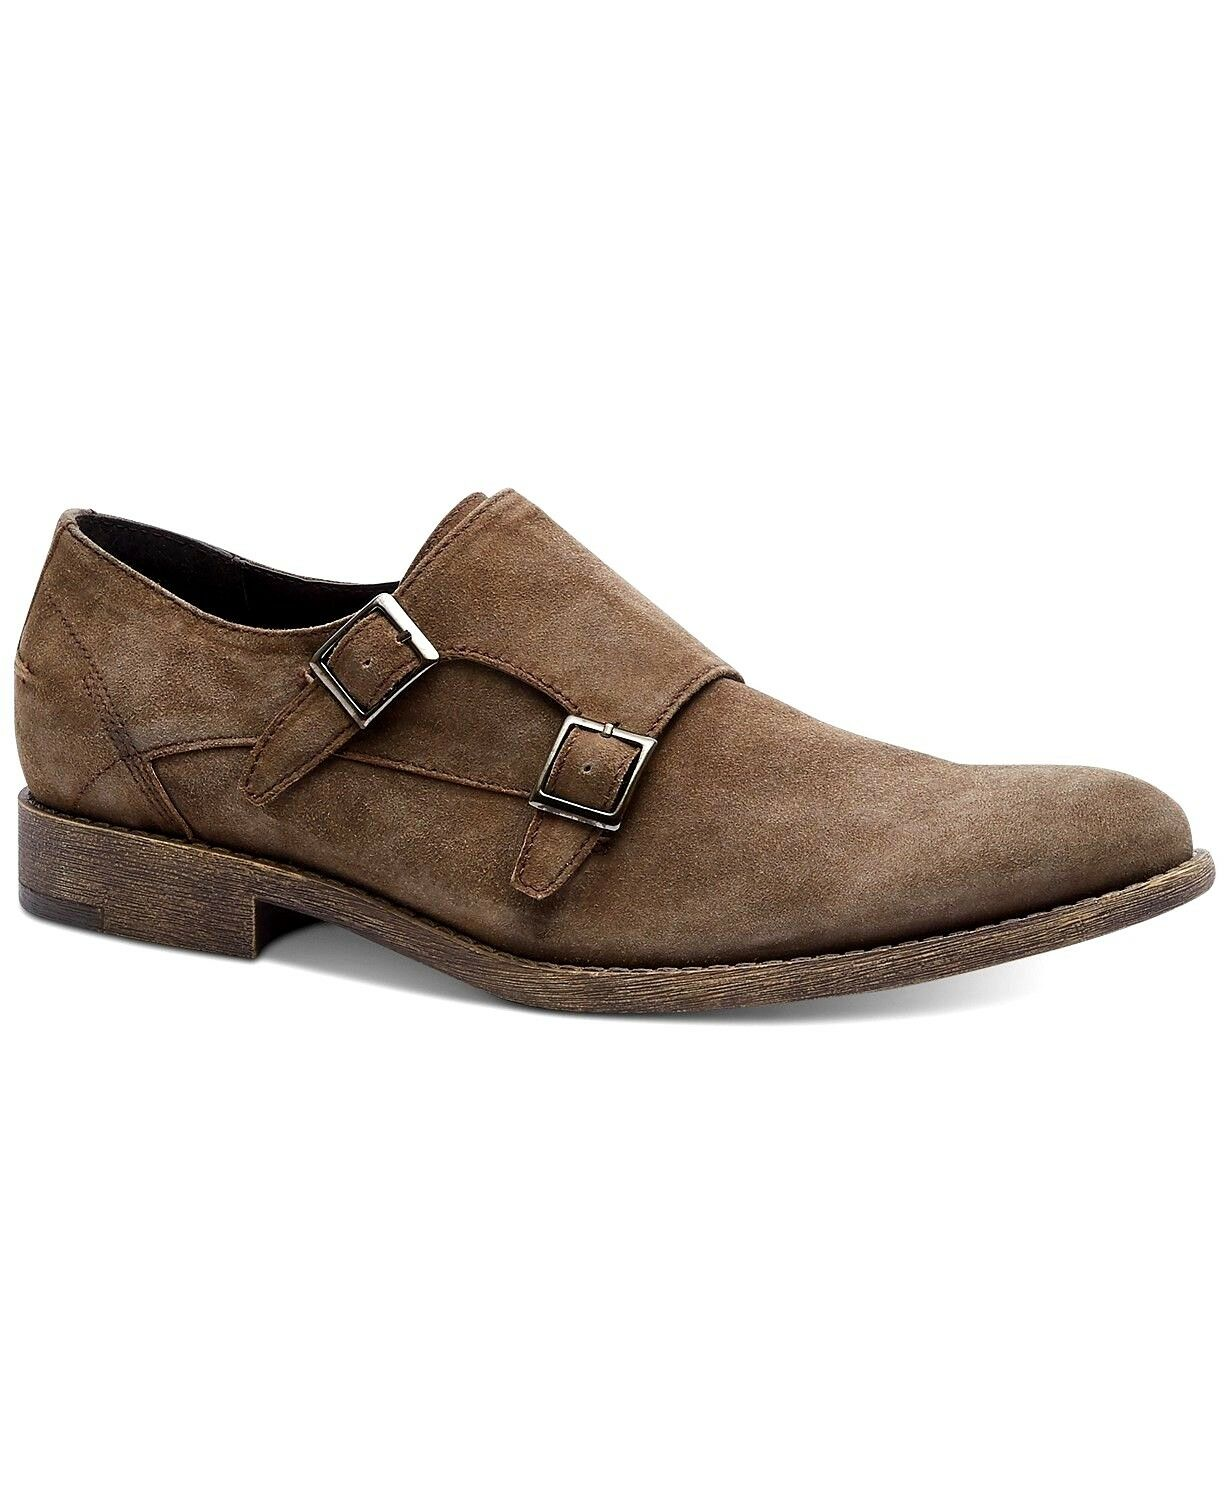 Kenneth Cole REACTION Homme Design 20644 Moine-Sangle Mocassin, Taupe, 7 m